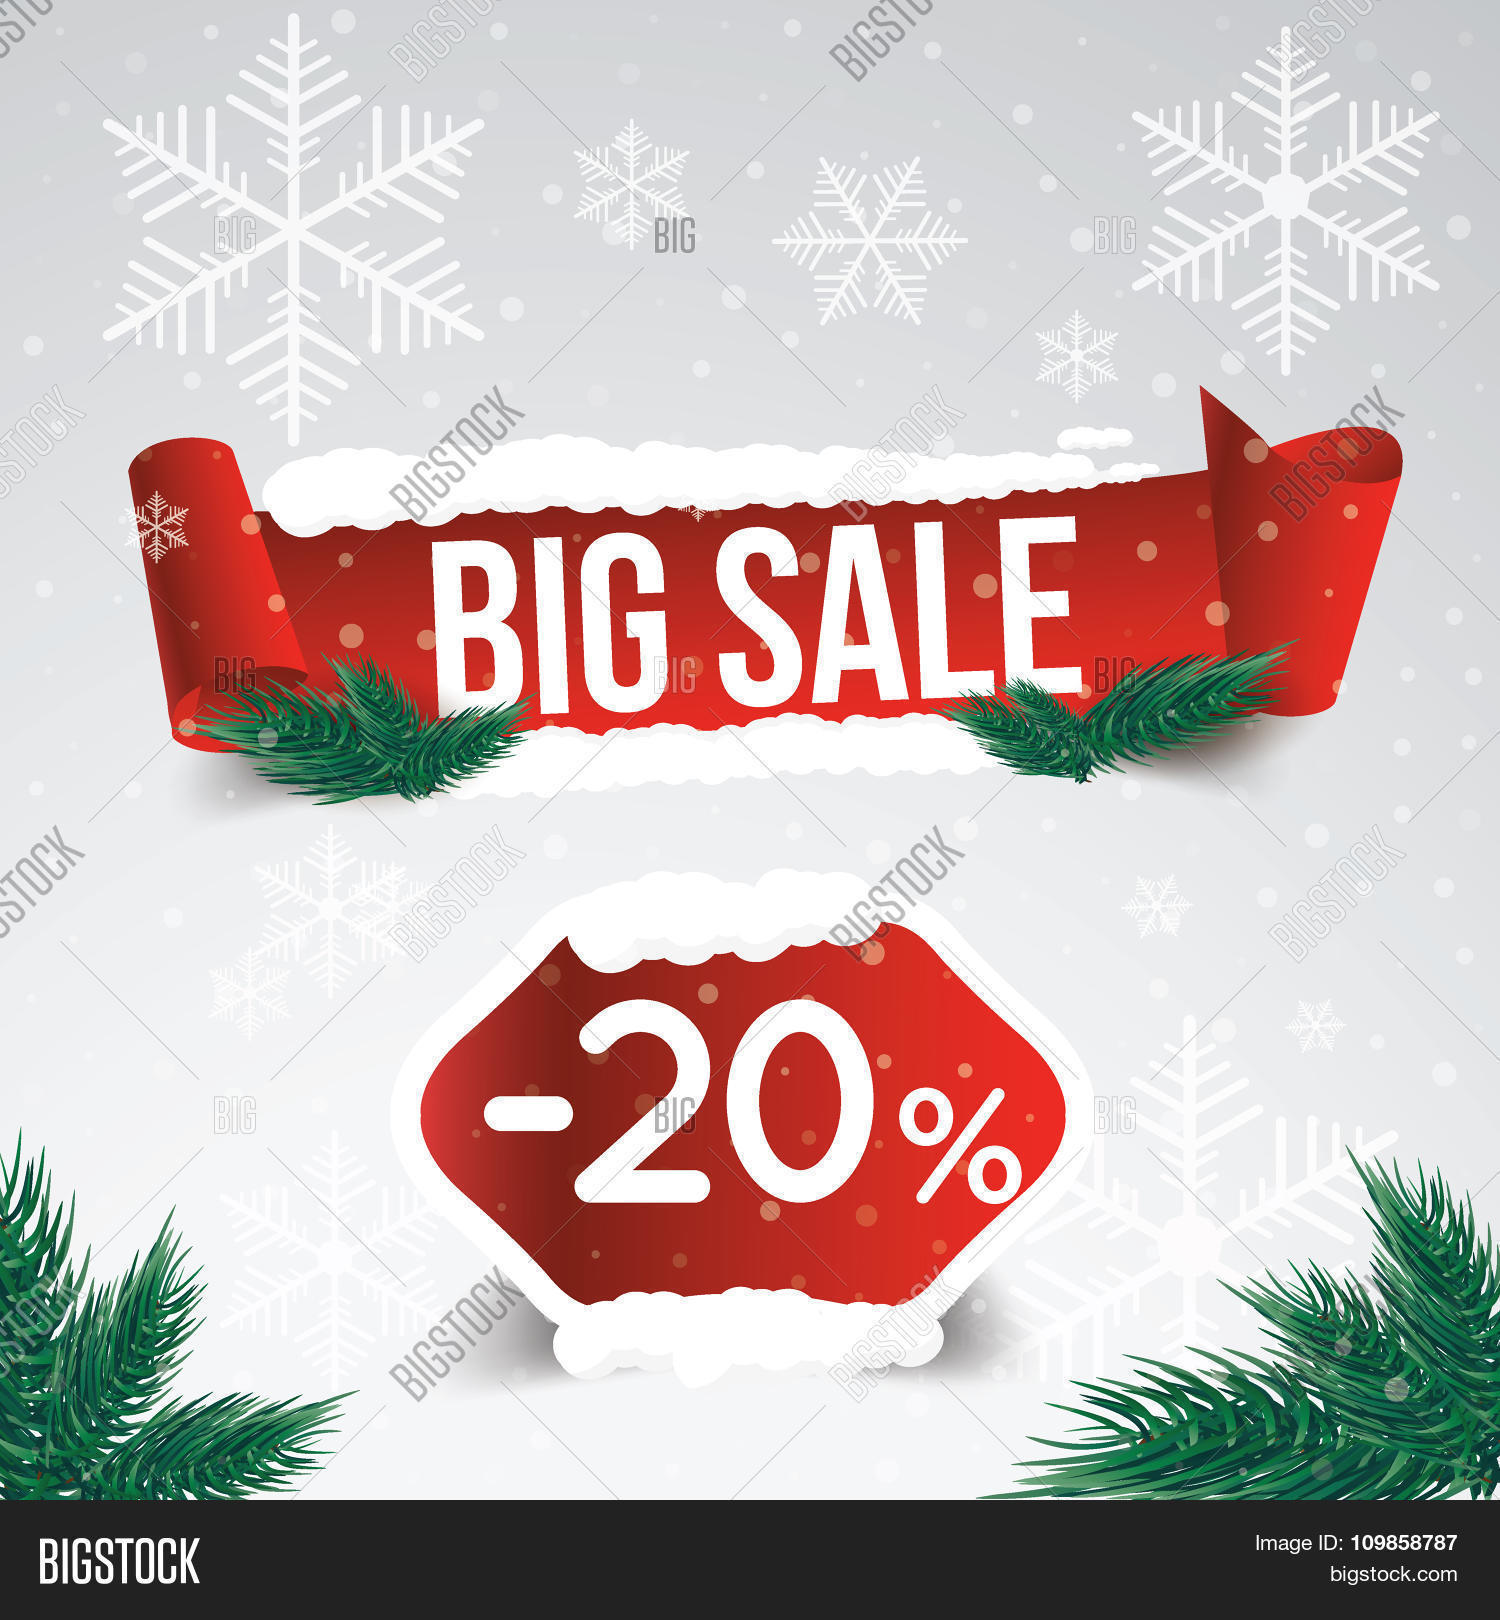 winter sale 20 percent winter vector photo bigstock. Black Bedroom Furniture Sets. Home Design Ideas